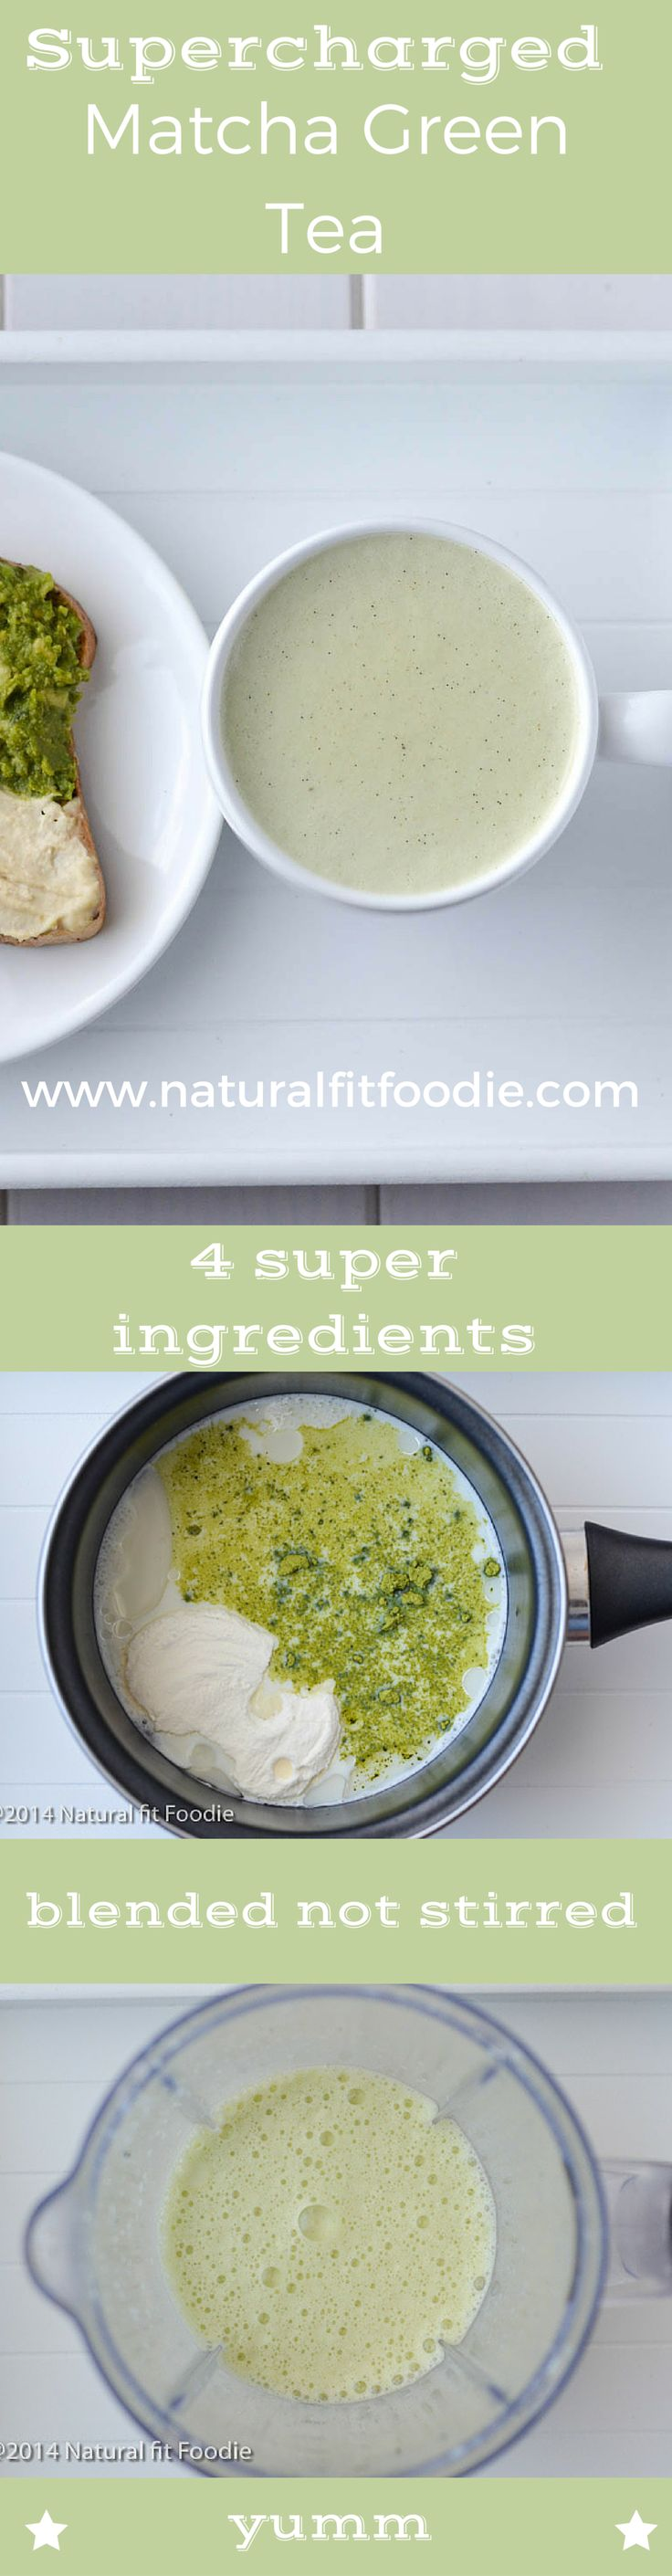 Matcha Green Tea Recipe - This Supercharged Matcha Green Tea is a delicious way to add powerful health benefits to your everyday diet! It's your gut healing, energy boosting meal in a cup!